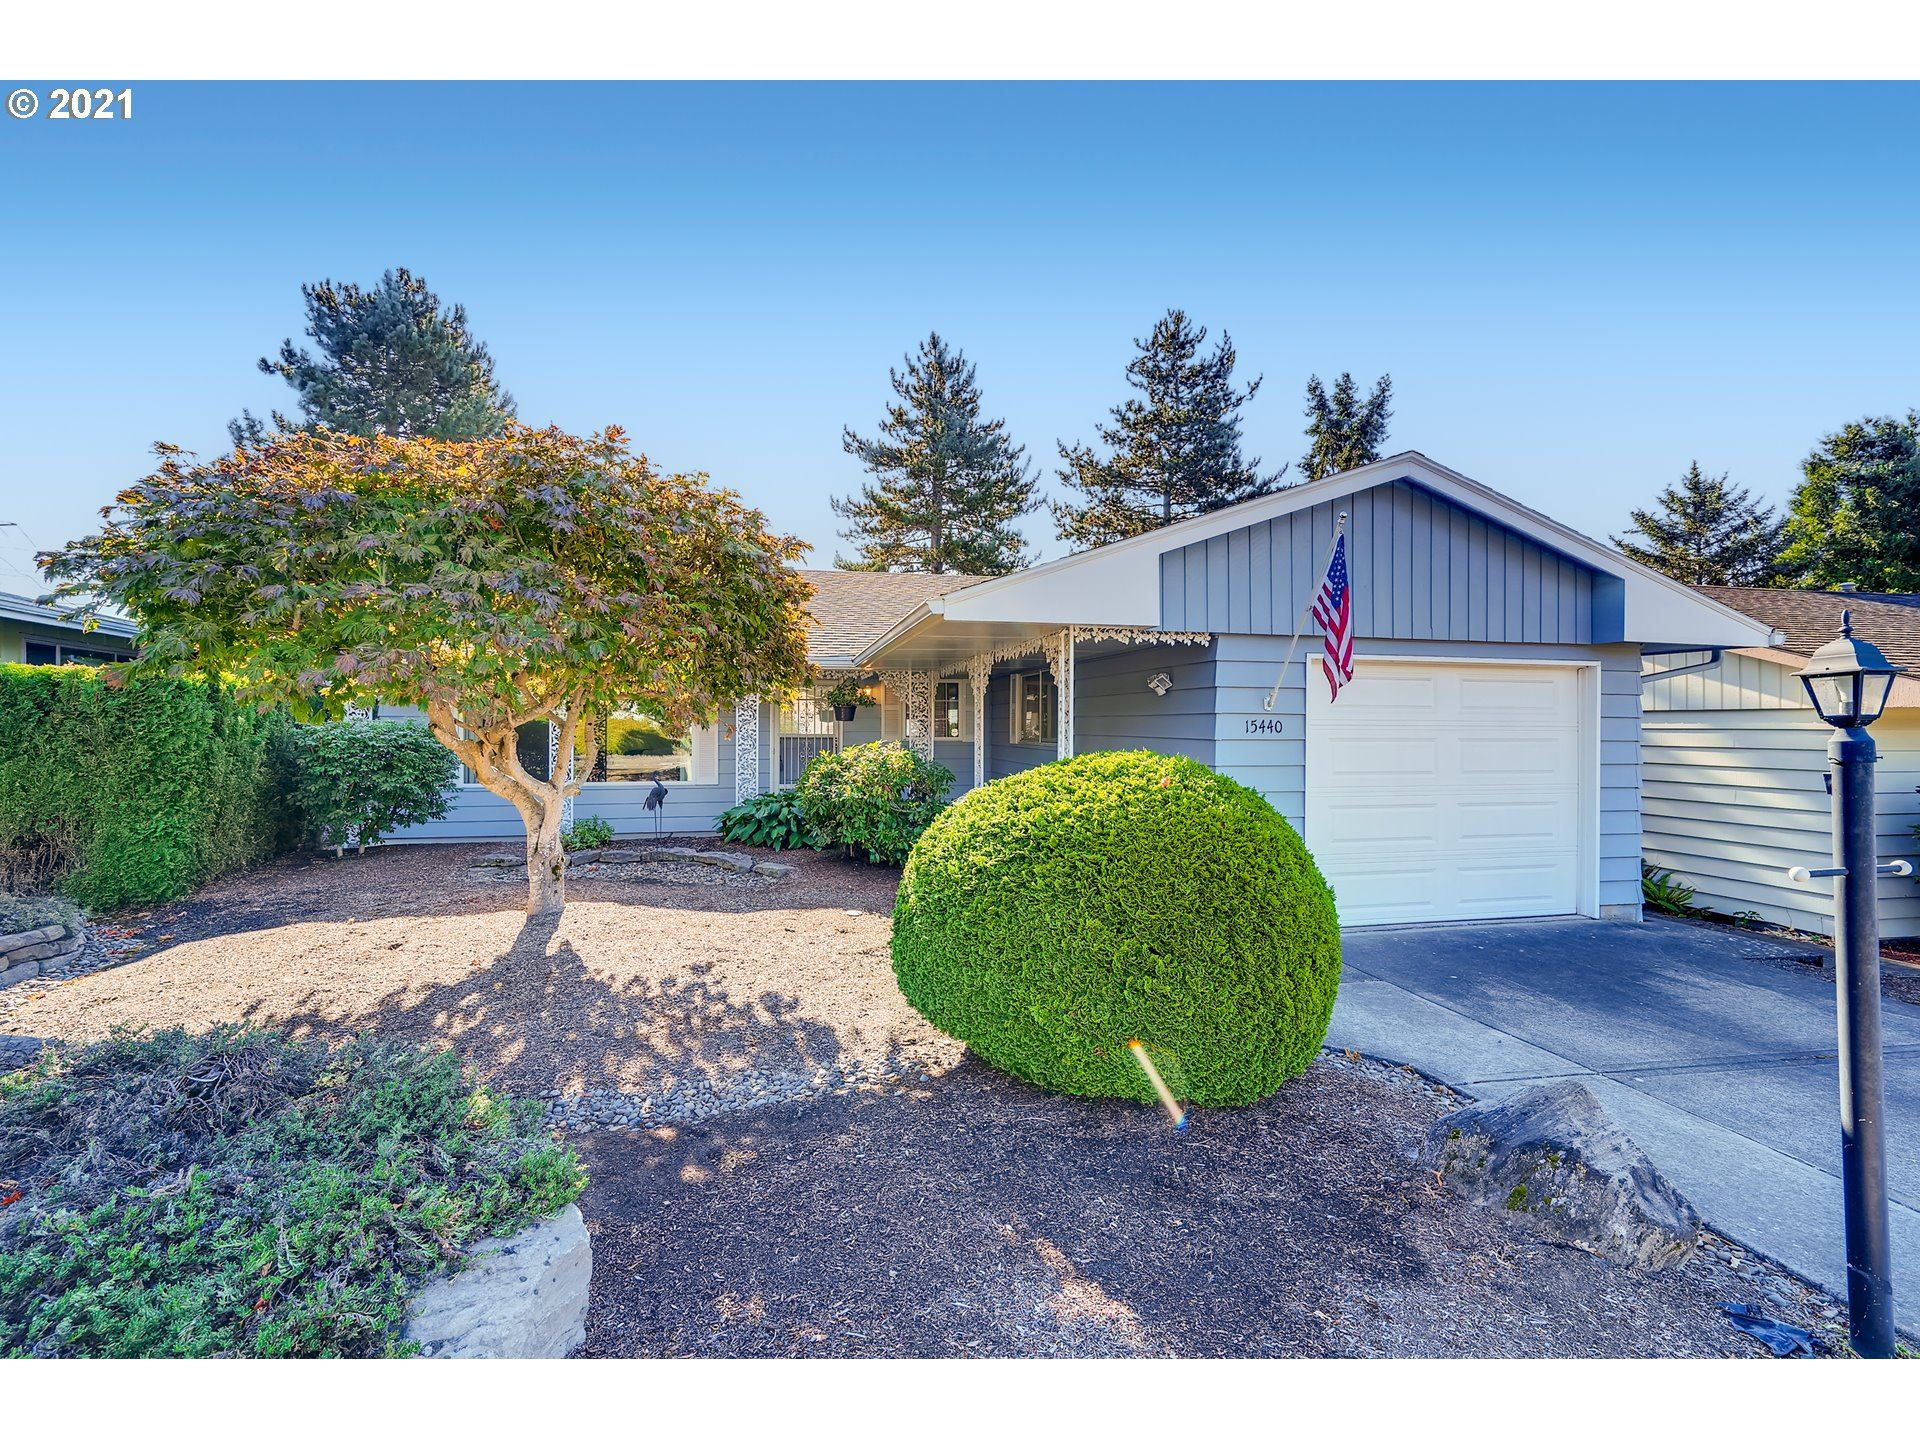 Photo of 15440 SW ROYALTY PKWY, King City, OR 97224 (MLS # 21695715)